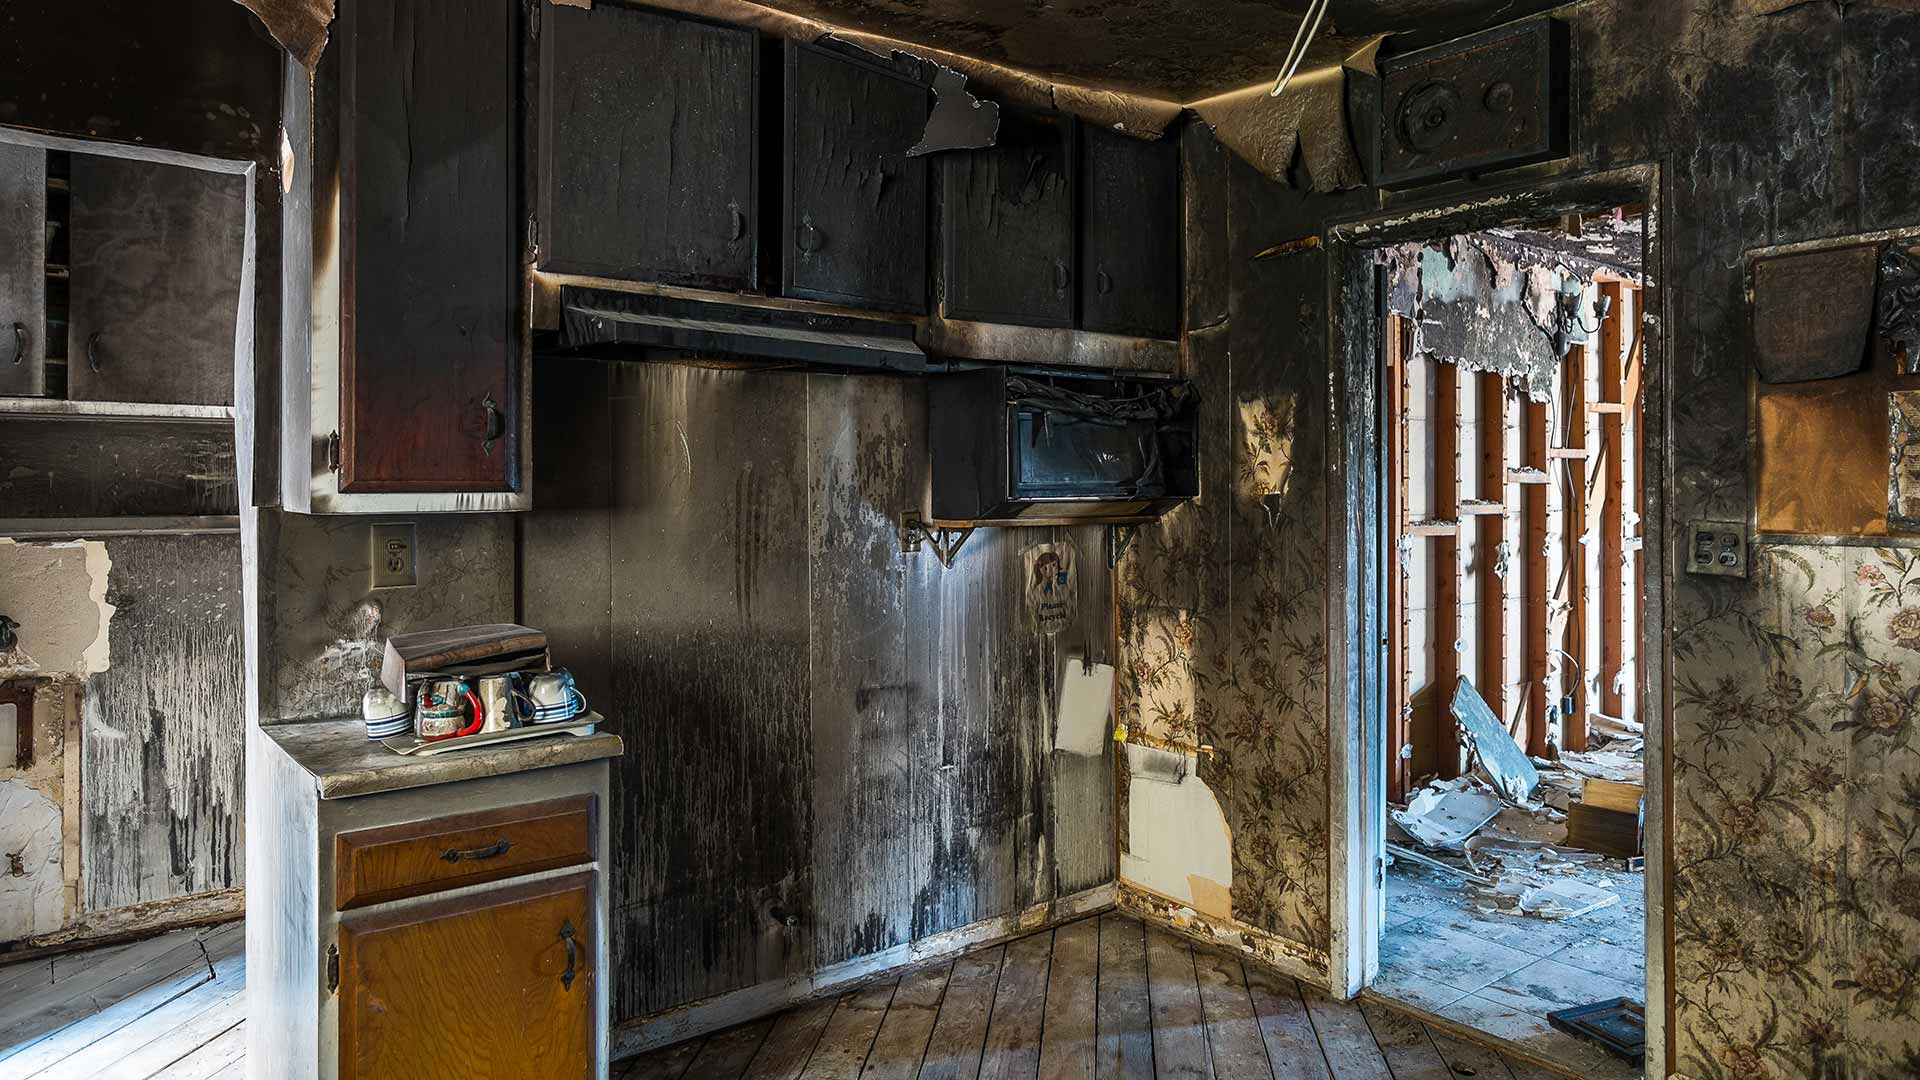 5 Most Common Causes of Kitchen Fires